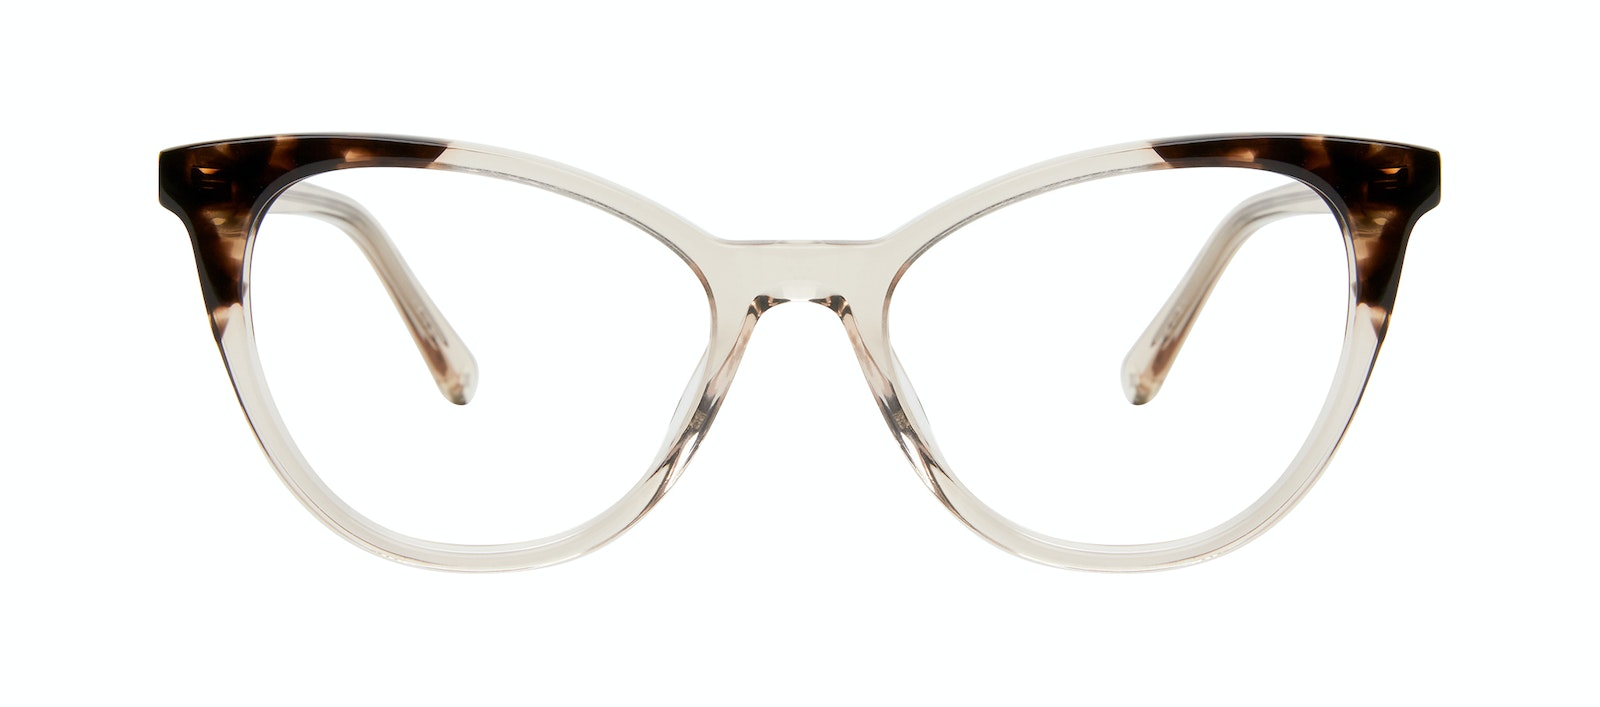 Affordable Fashion Glasses Cat Eye Eyeglasses Women Victoire Golden Tortoise Front